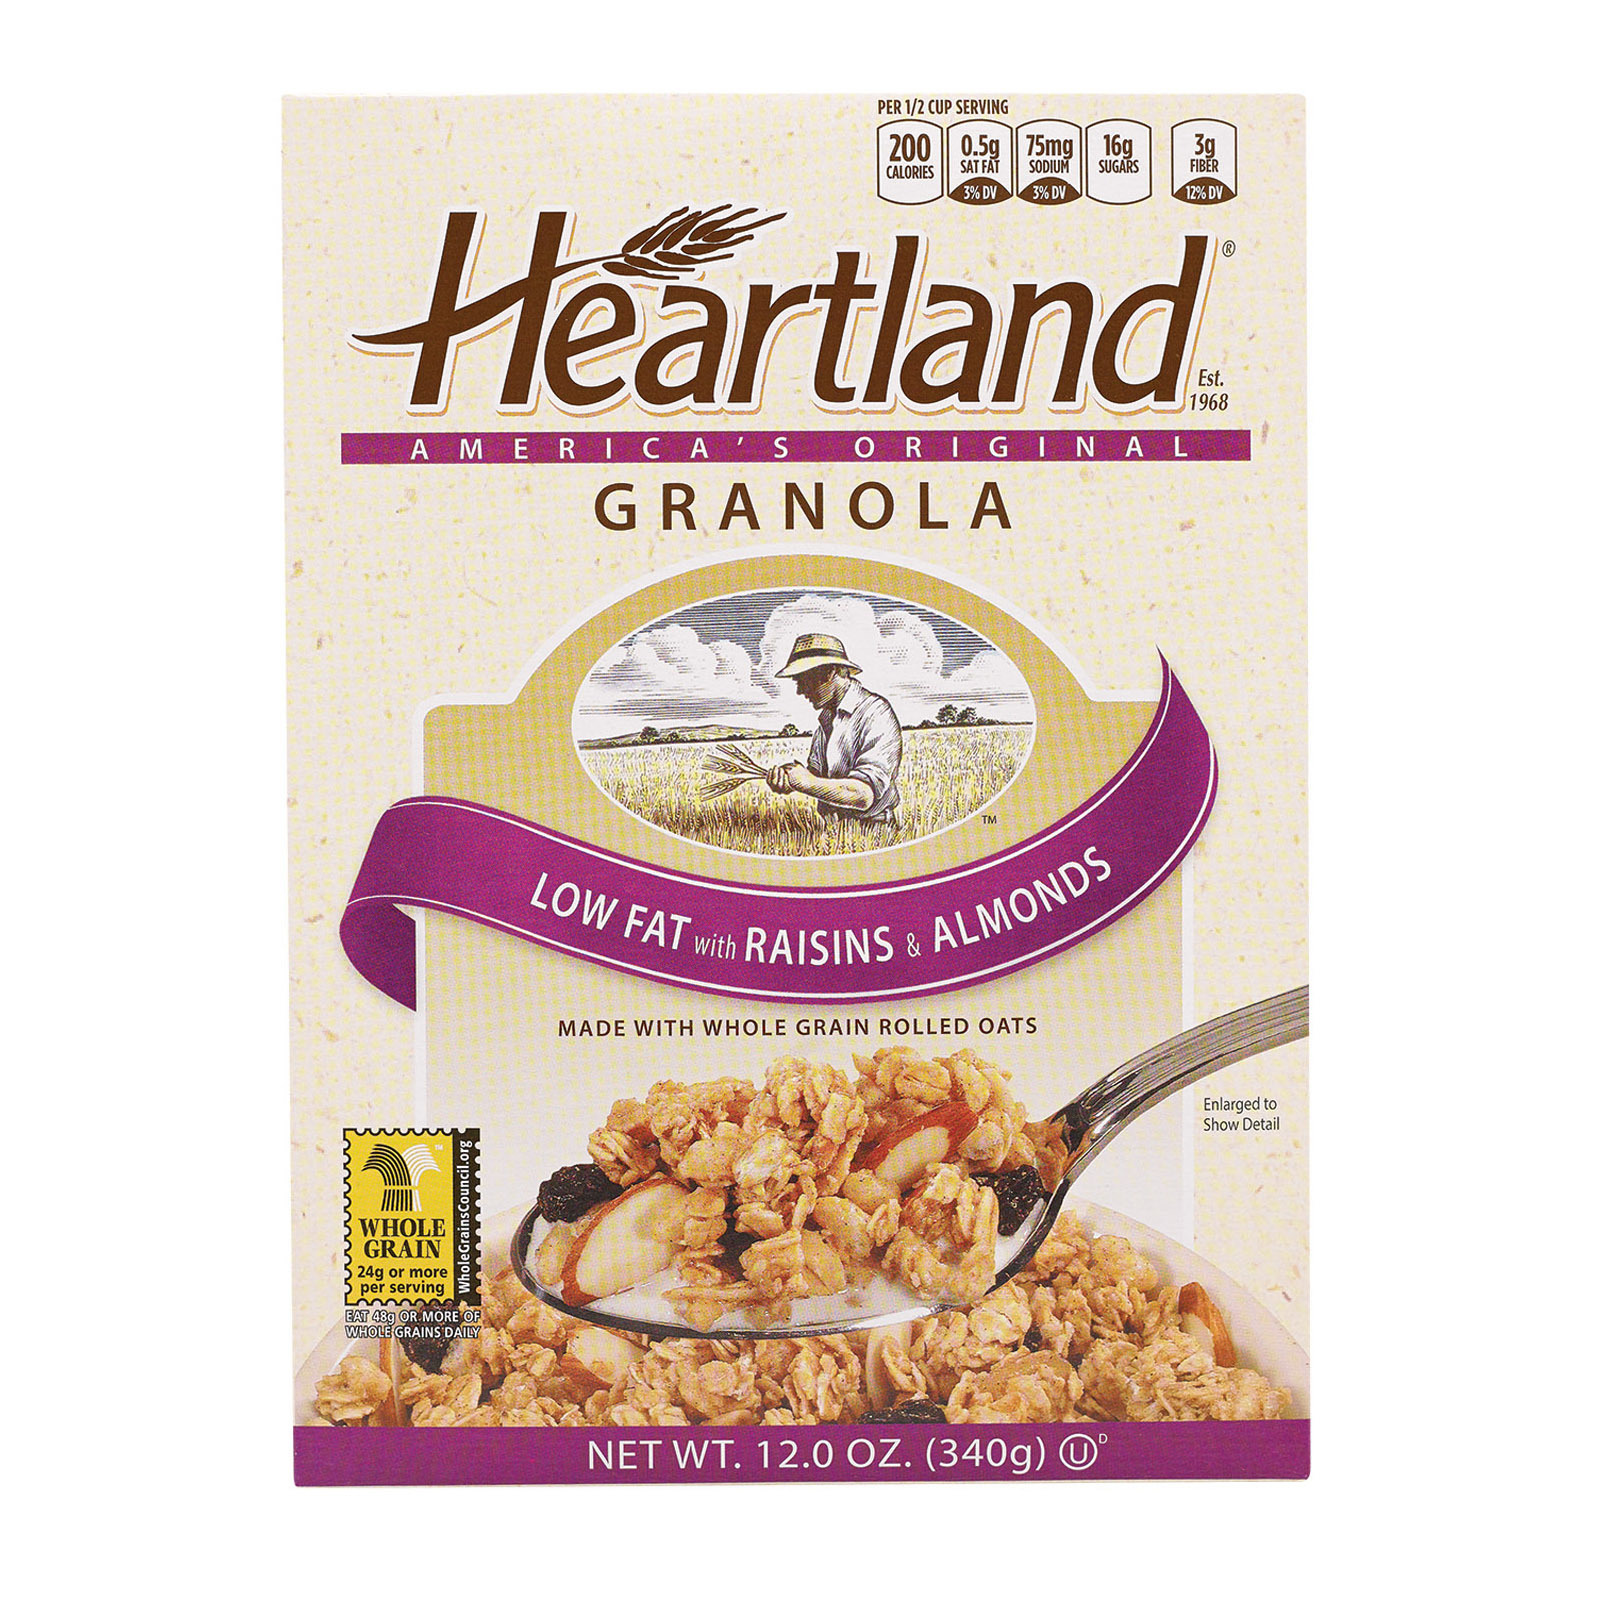 Heartland Granola Cereals - Low Fat with Raisin - Case of 6 - 12 oz.